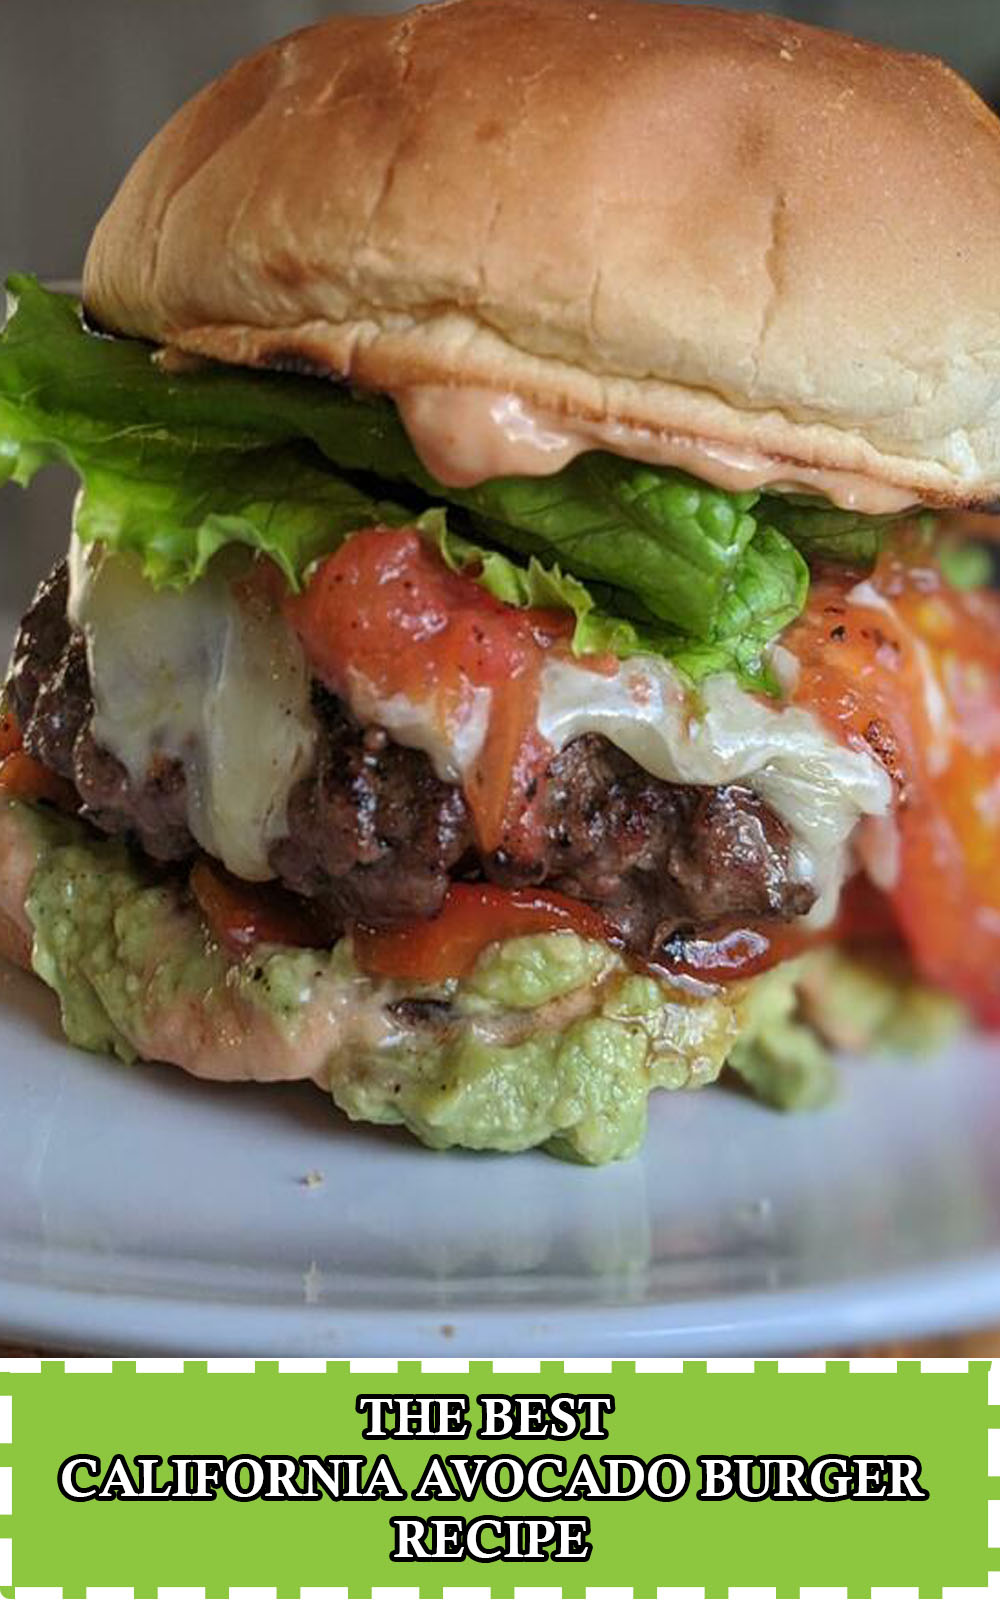 California avocado burger